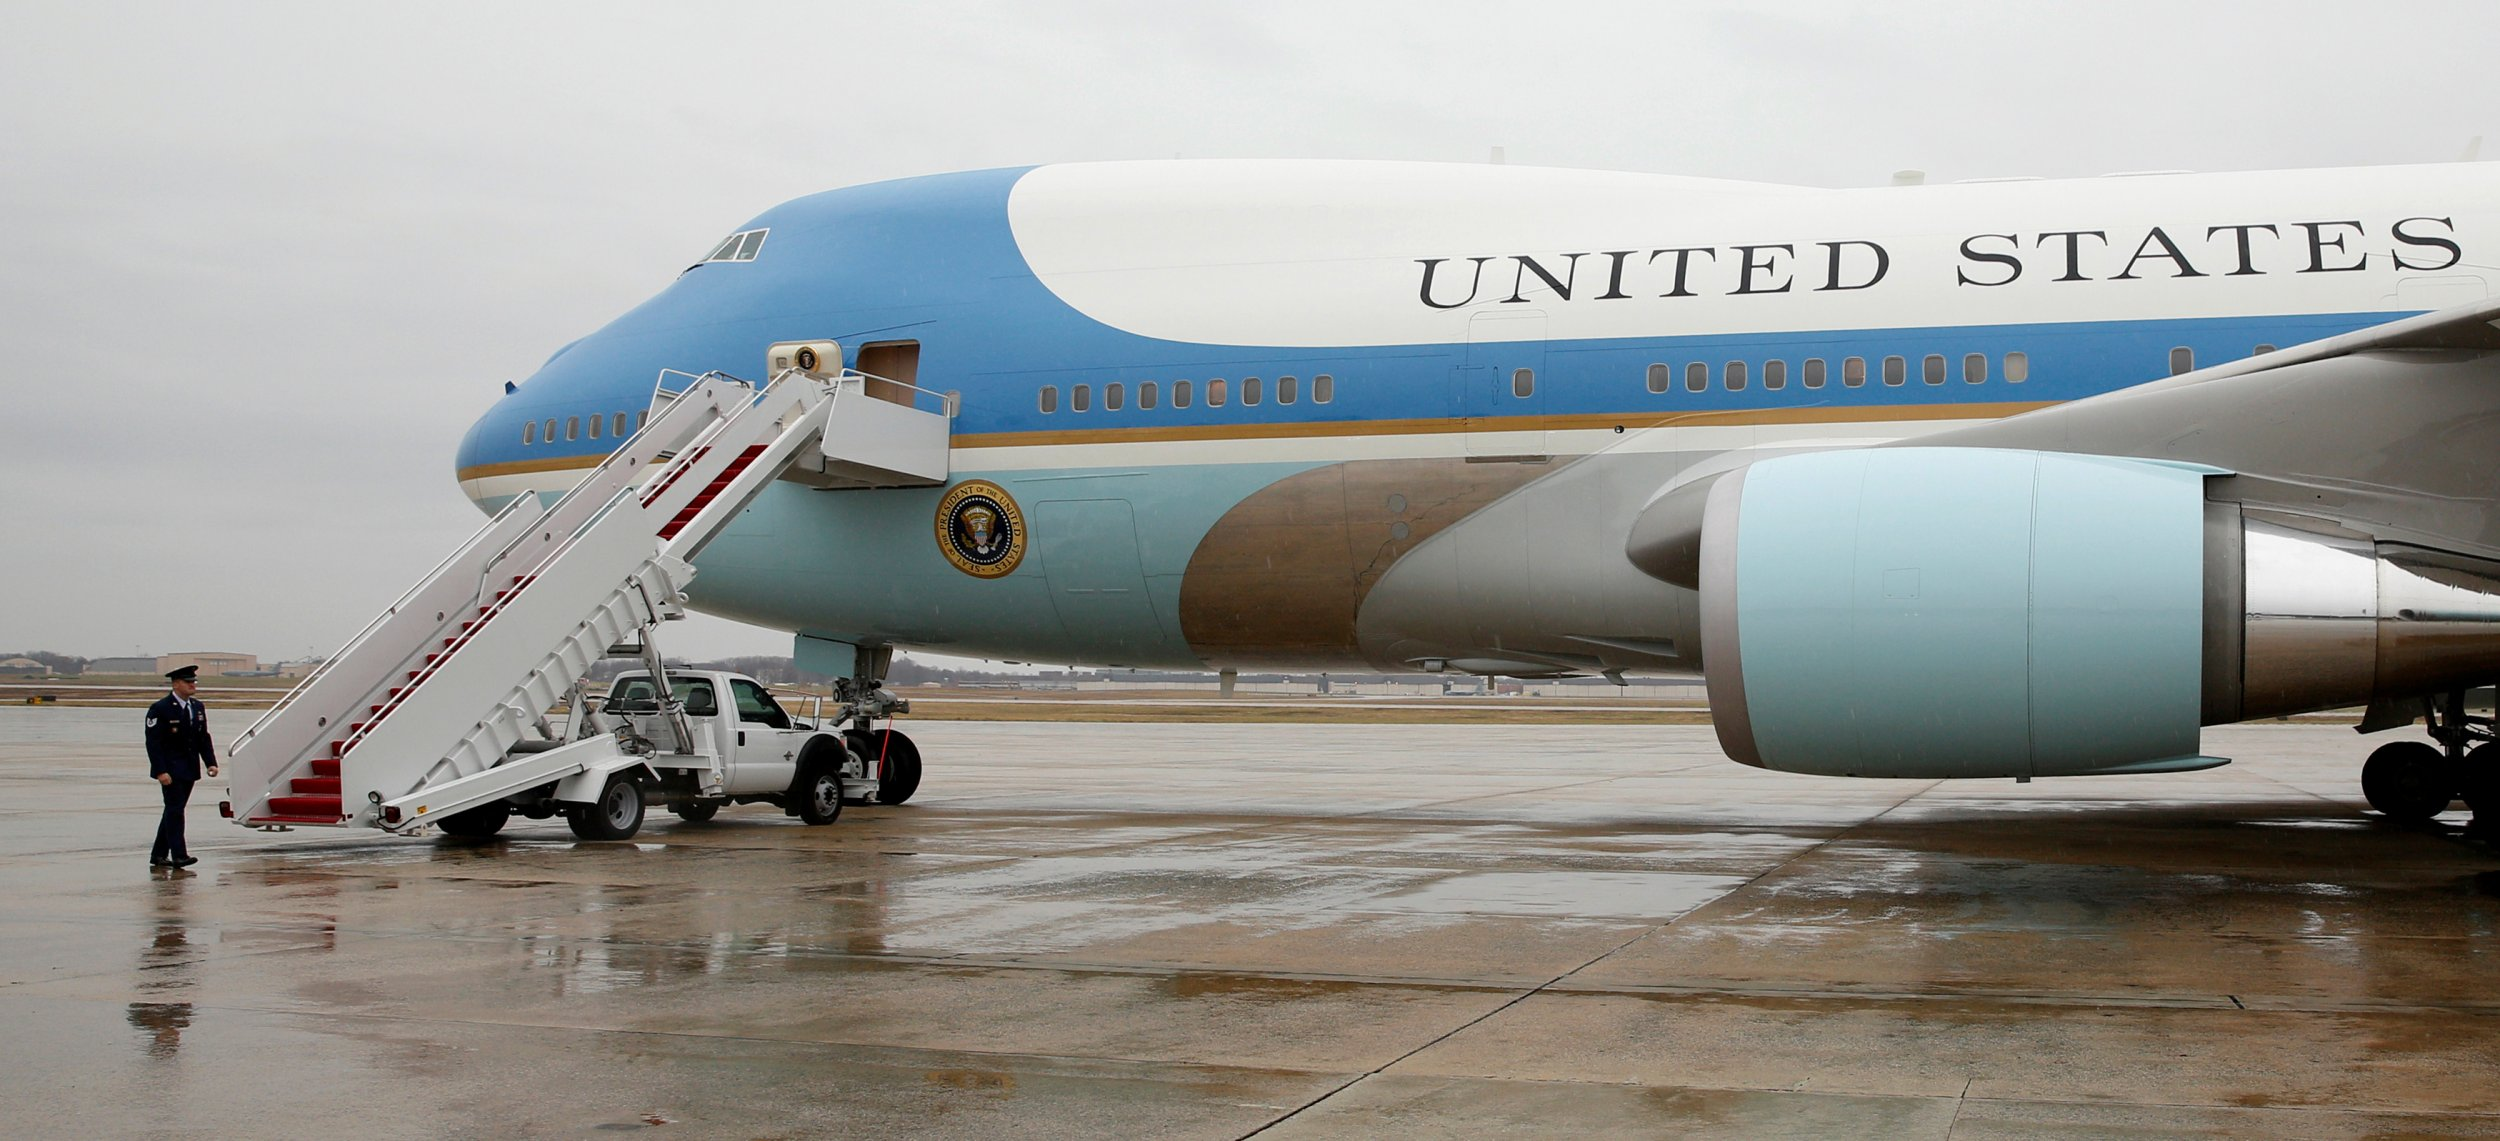 Cancel order! Trump says new Air Force One cost ridiculous | MPR News